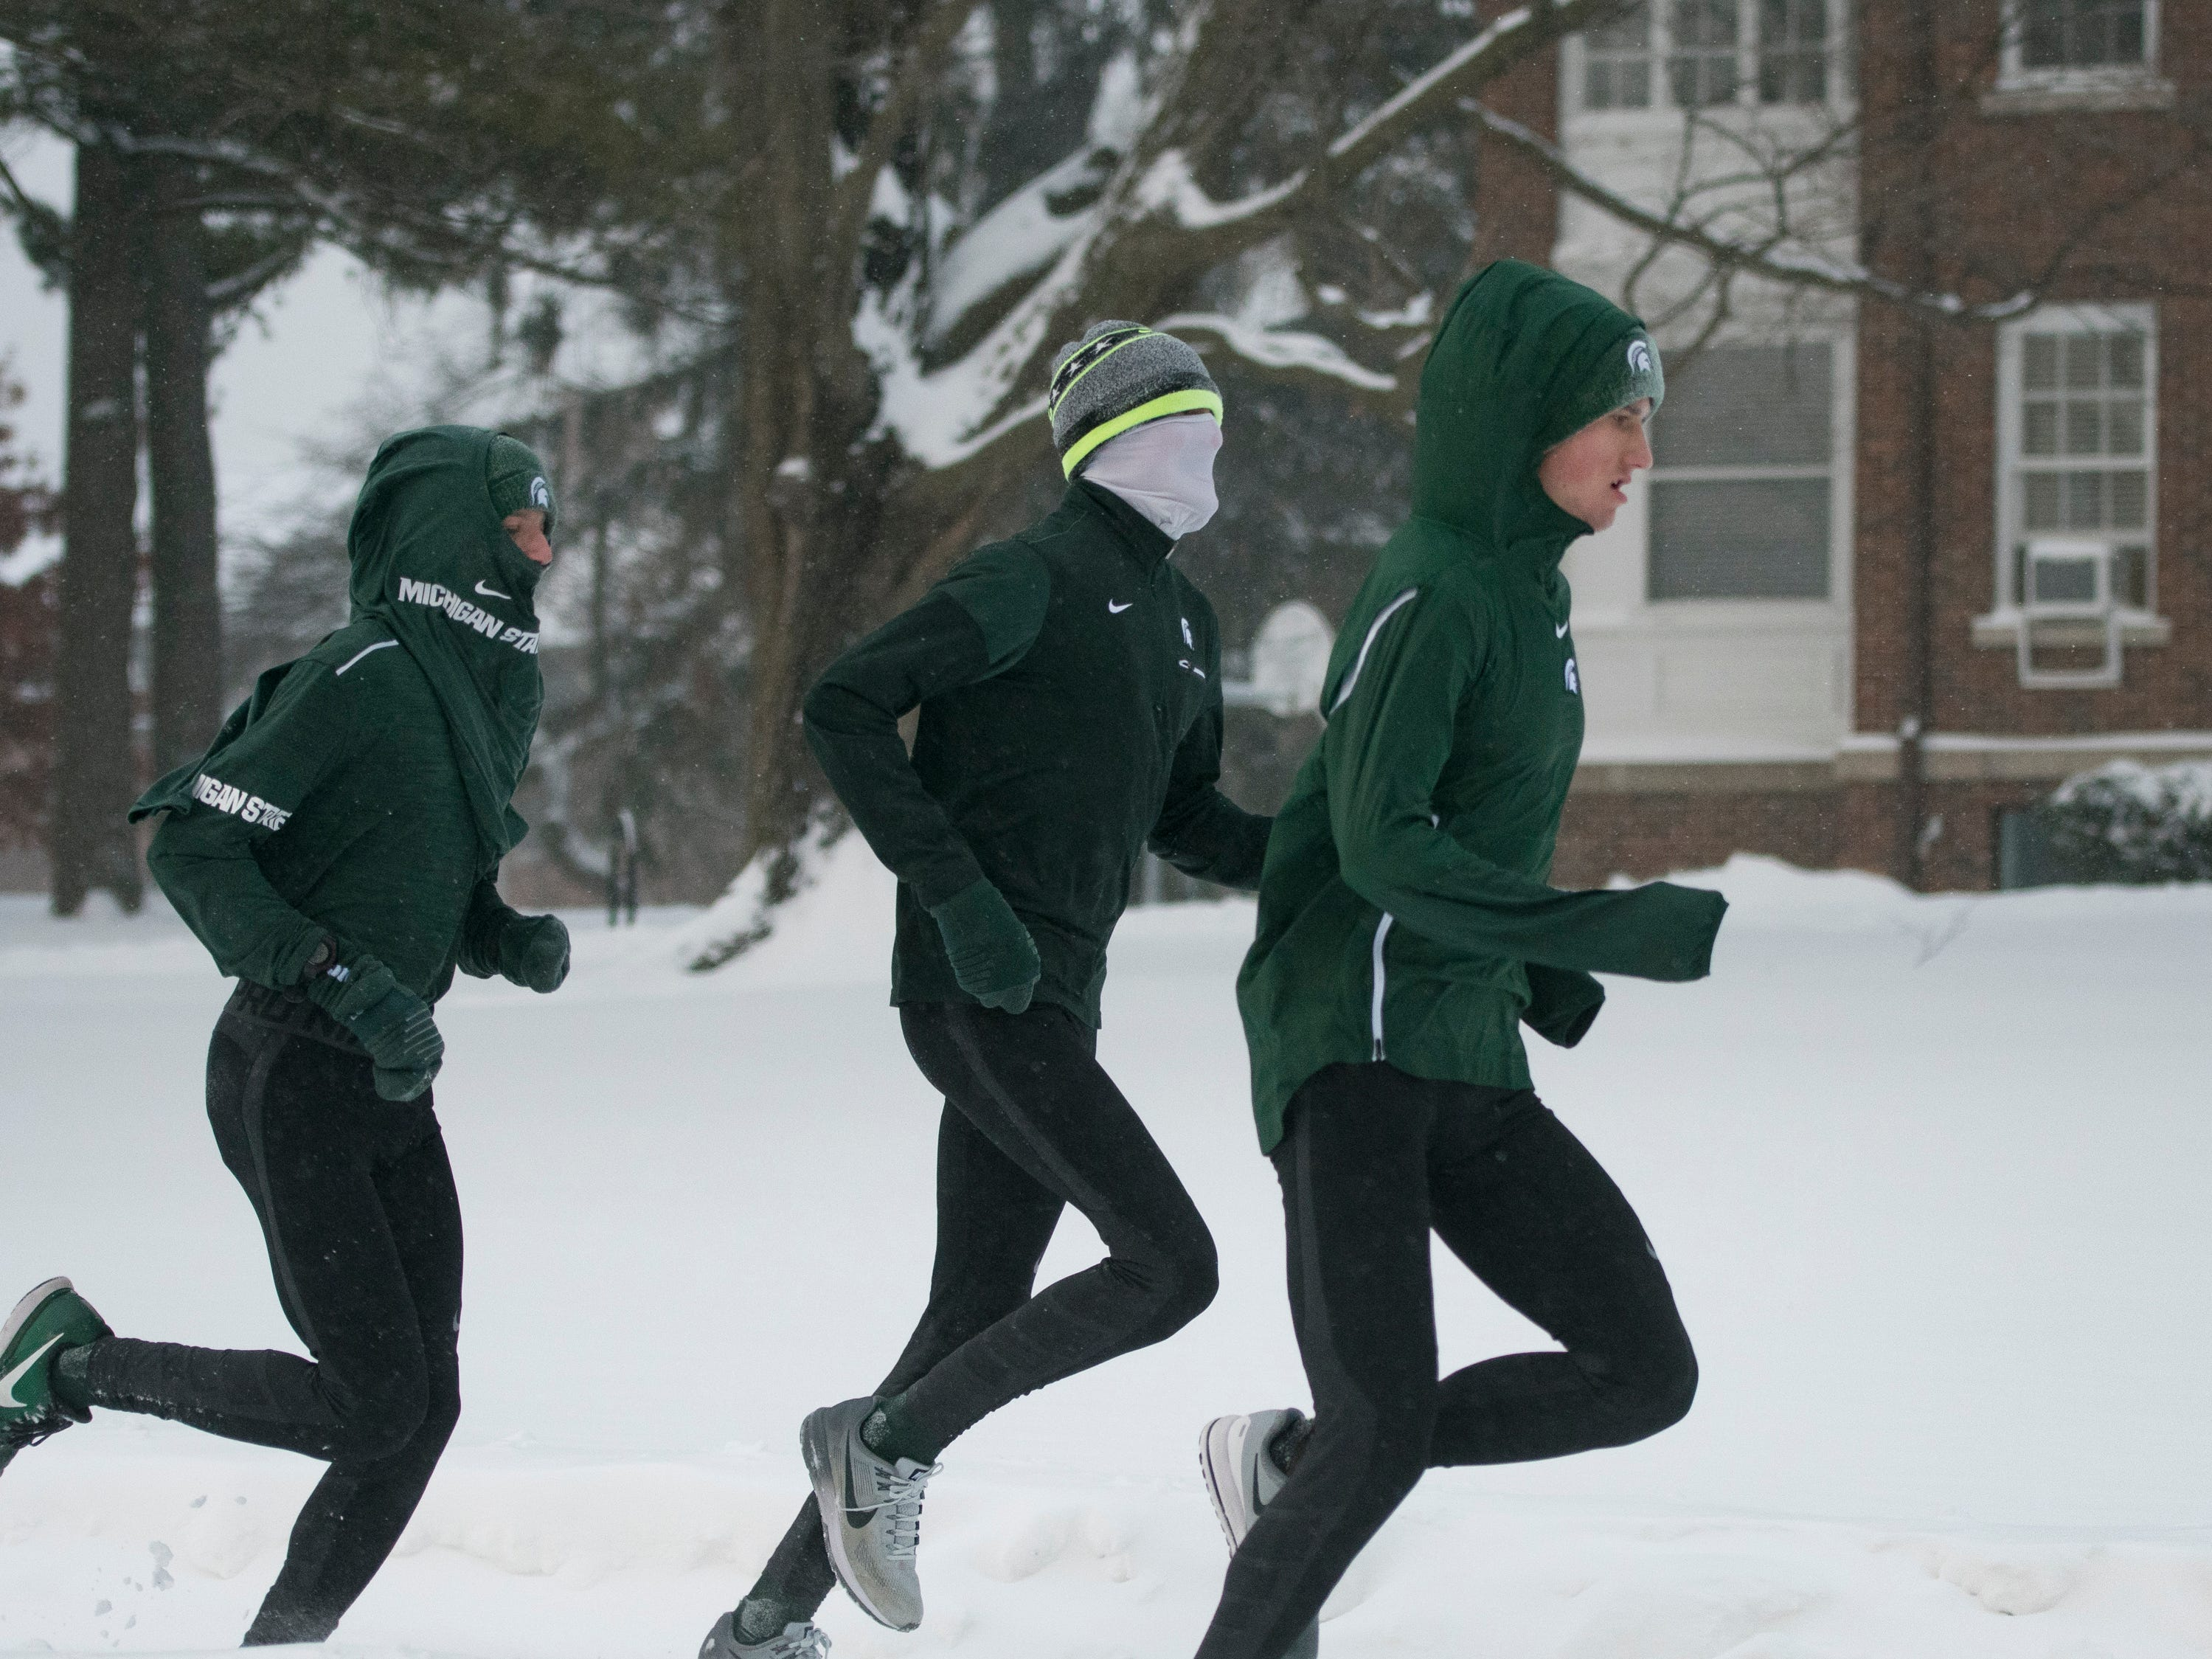 Despite sub-zero windchills, three run down Grand River Ave. on the campus of Michigan State University Tuesday, Jan. 29, 2019, in East Lansing, Michigan.  MSU canceled class Wednesday and Thursday and is lowering the temperatures in some buildings and serving a simpler menu in its dining halls in light of the state's energy emergency.